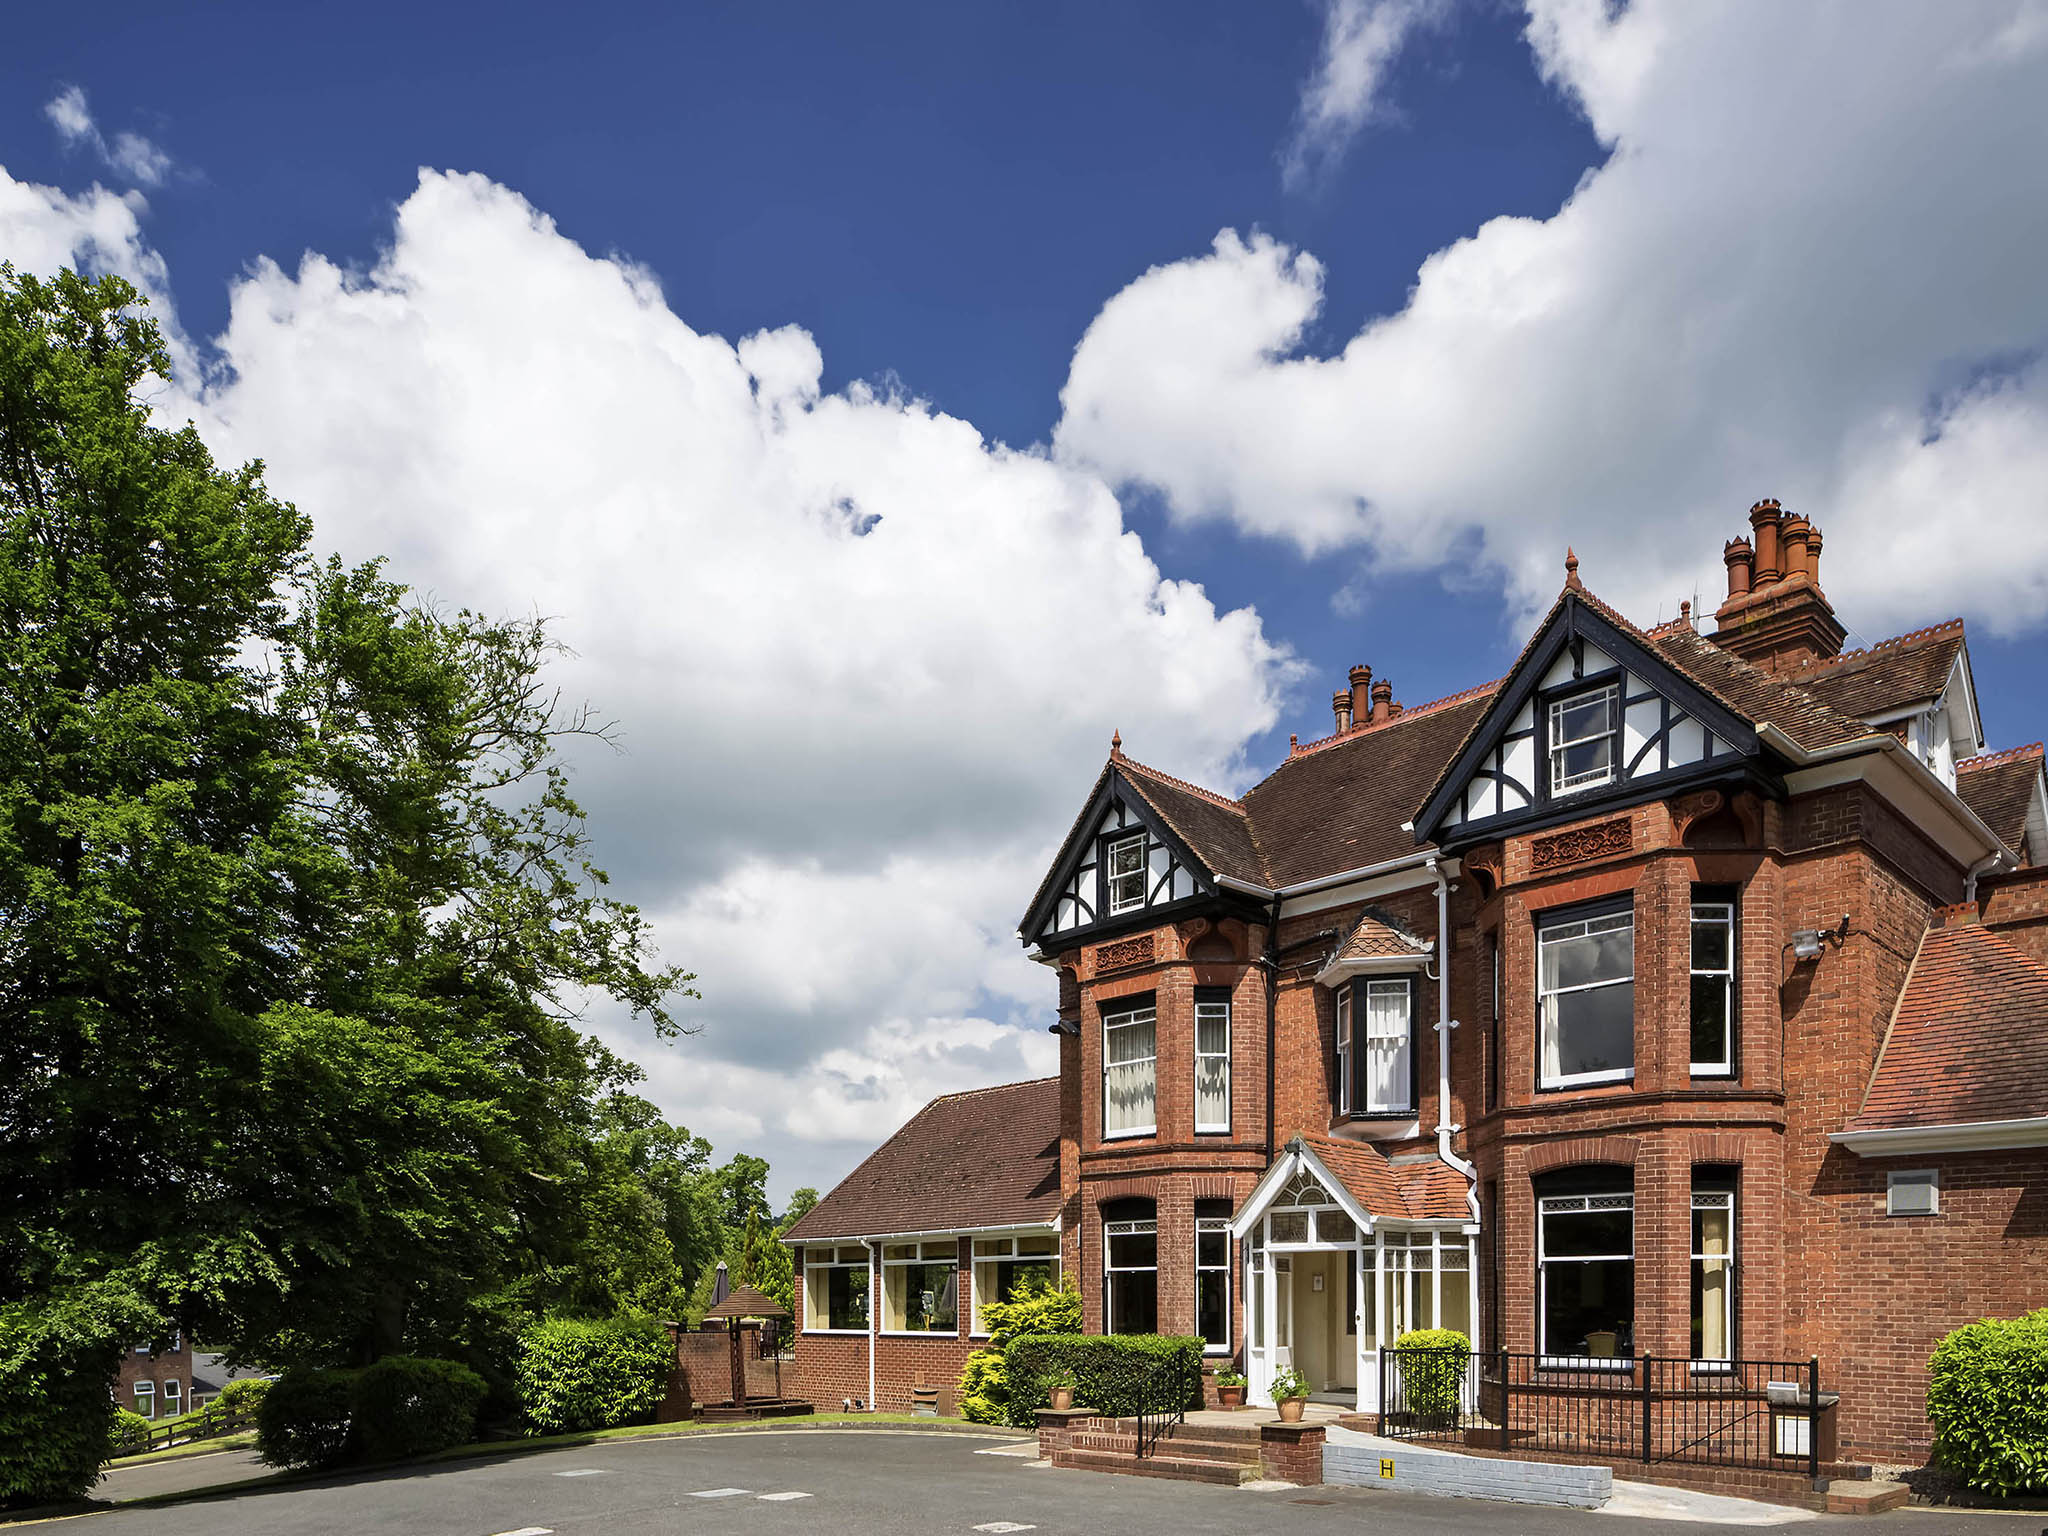 Hotel – Mercure Bewdley The Heath Hotel